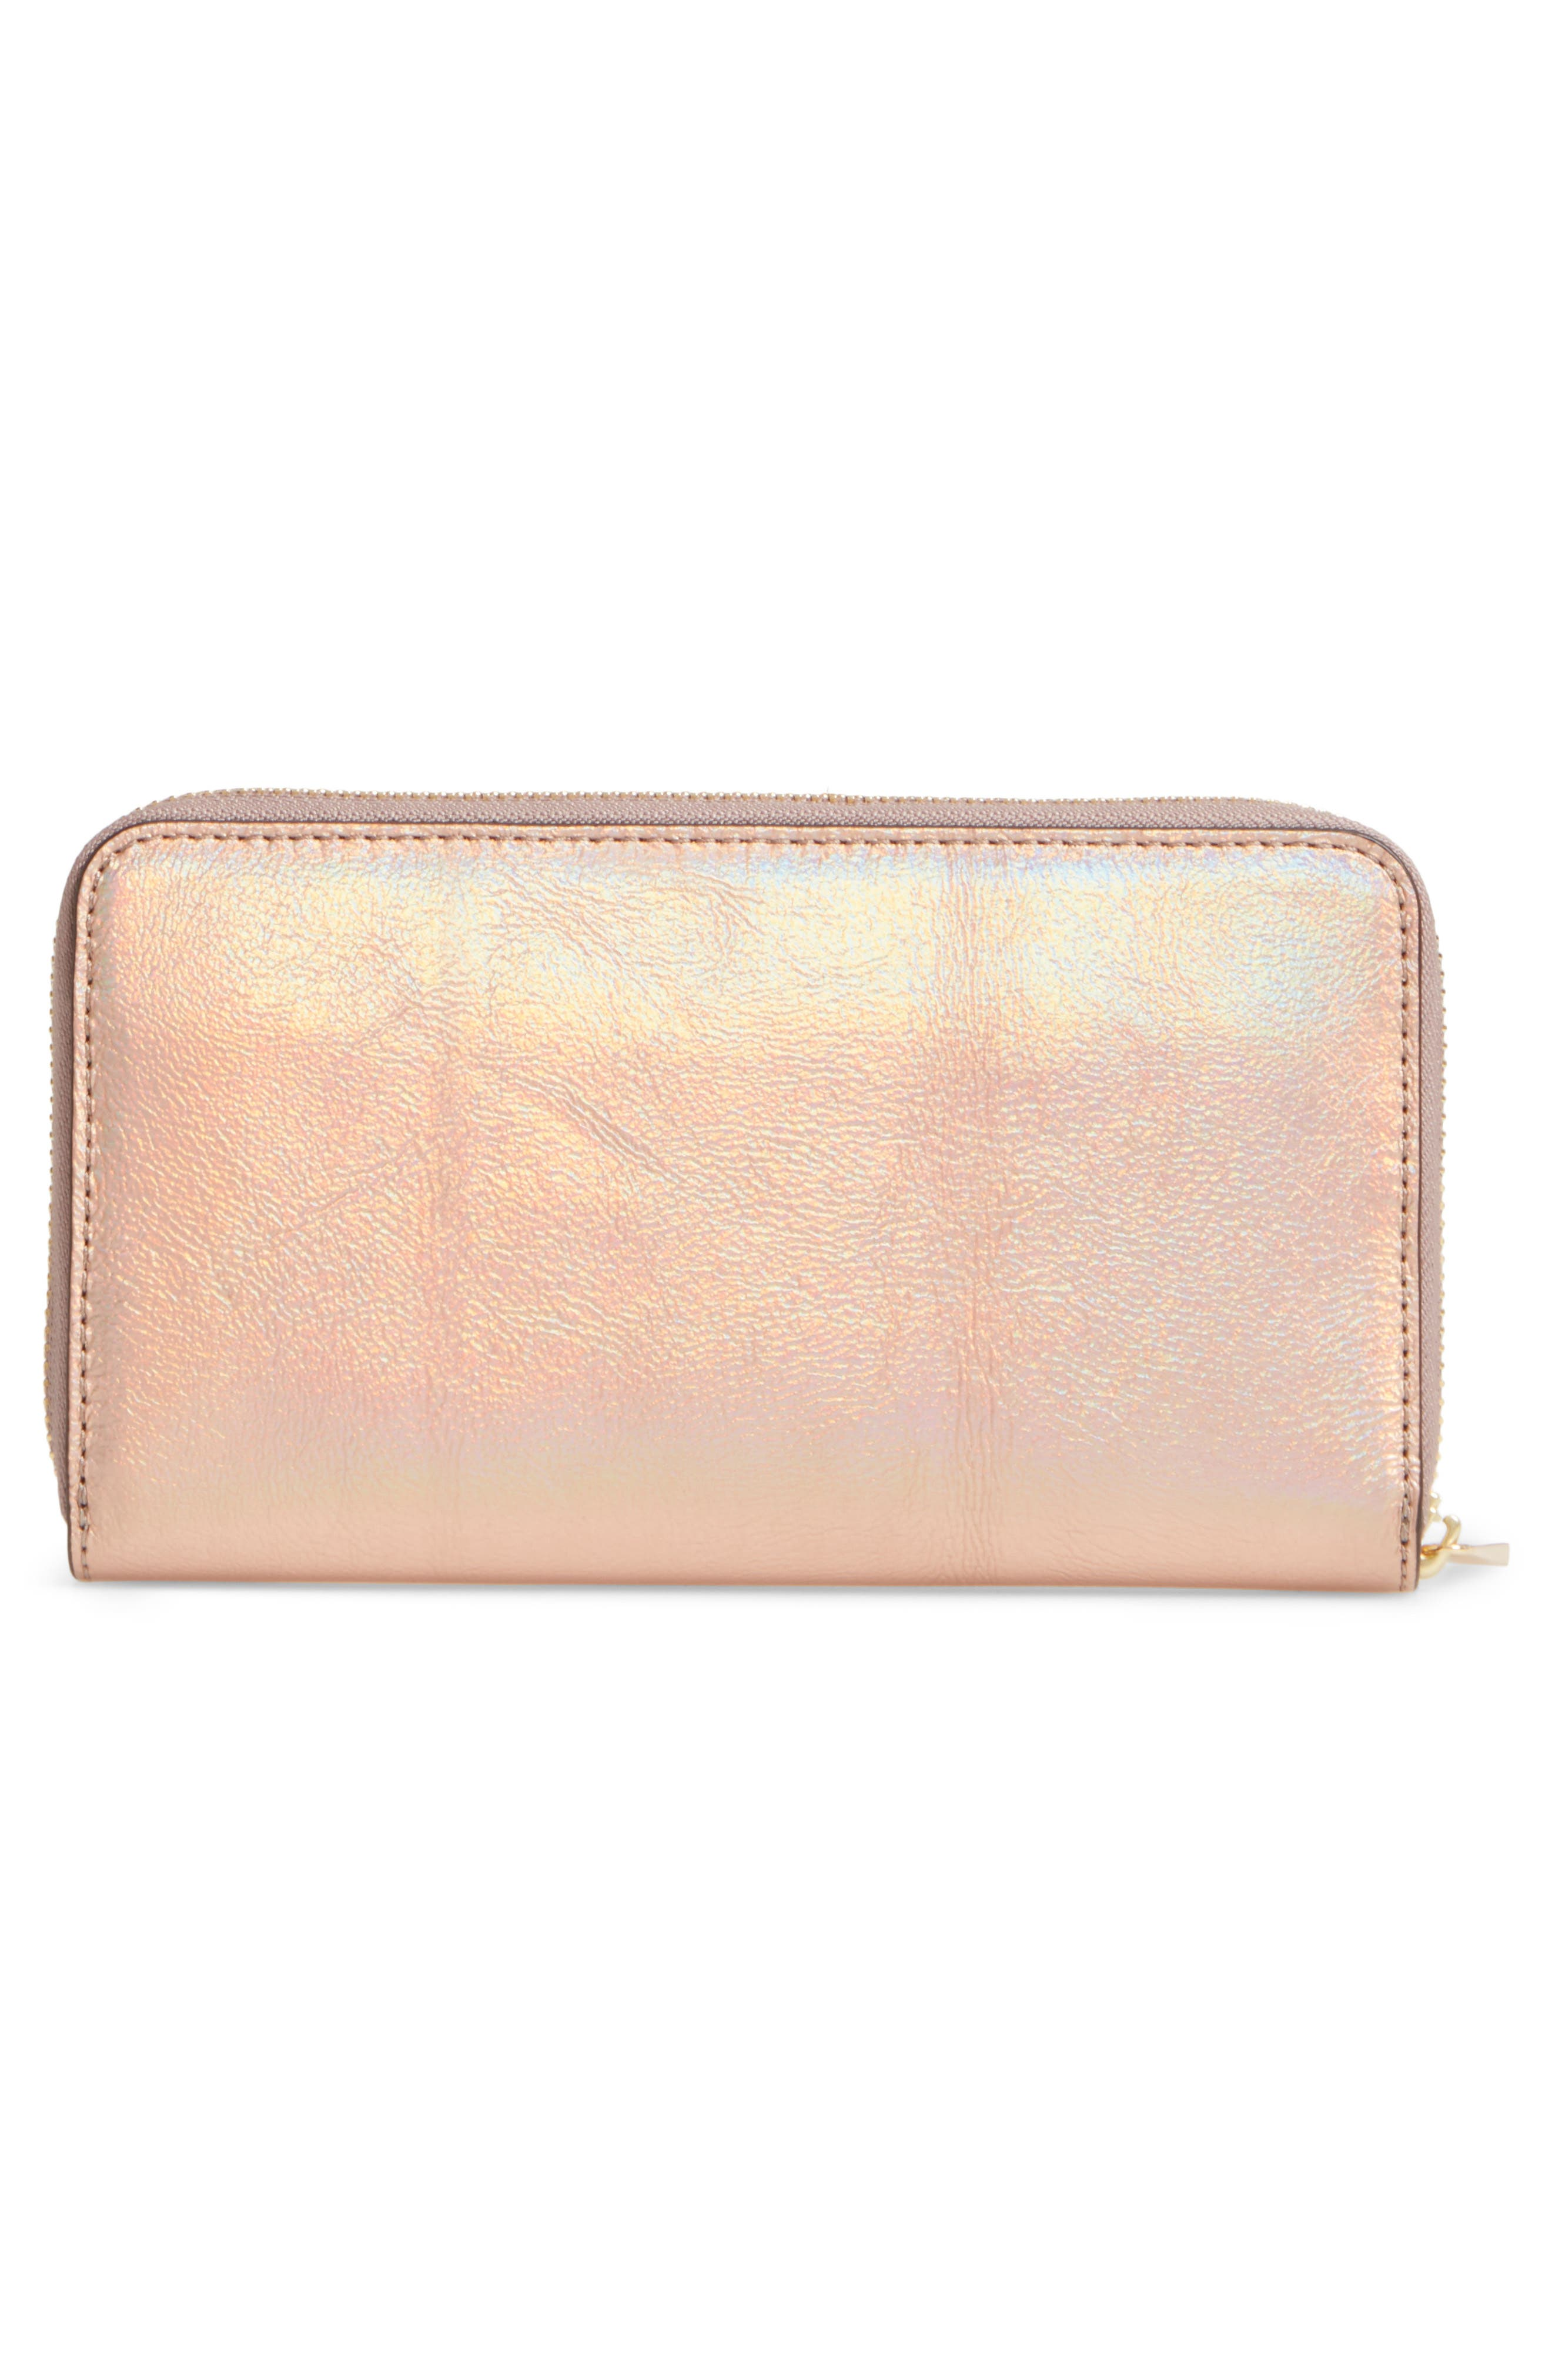 Robinson Metallic Leather Continental Wallet,                             Alternate thumbnail 3, color,                             654